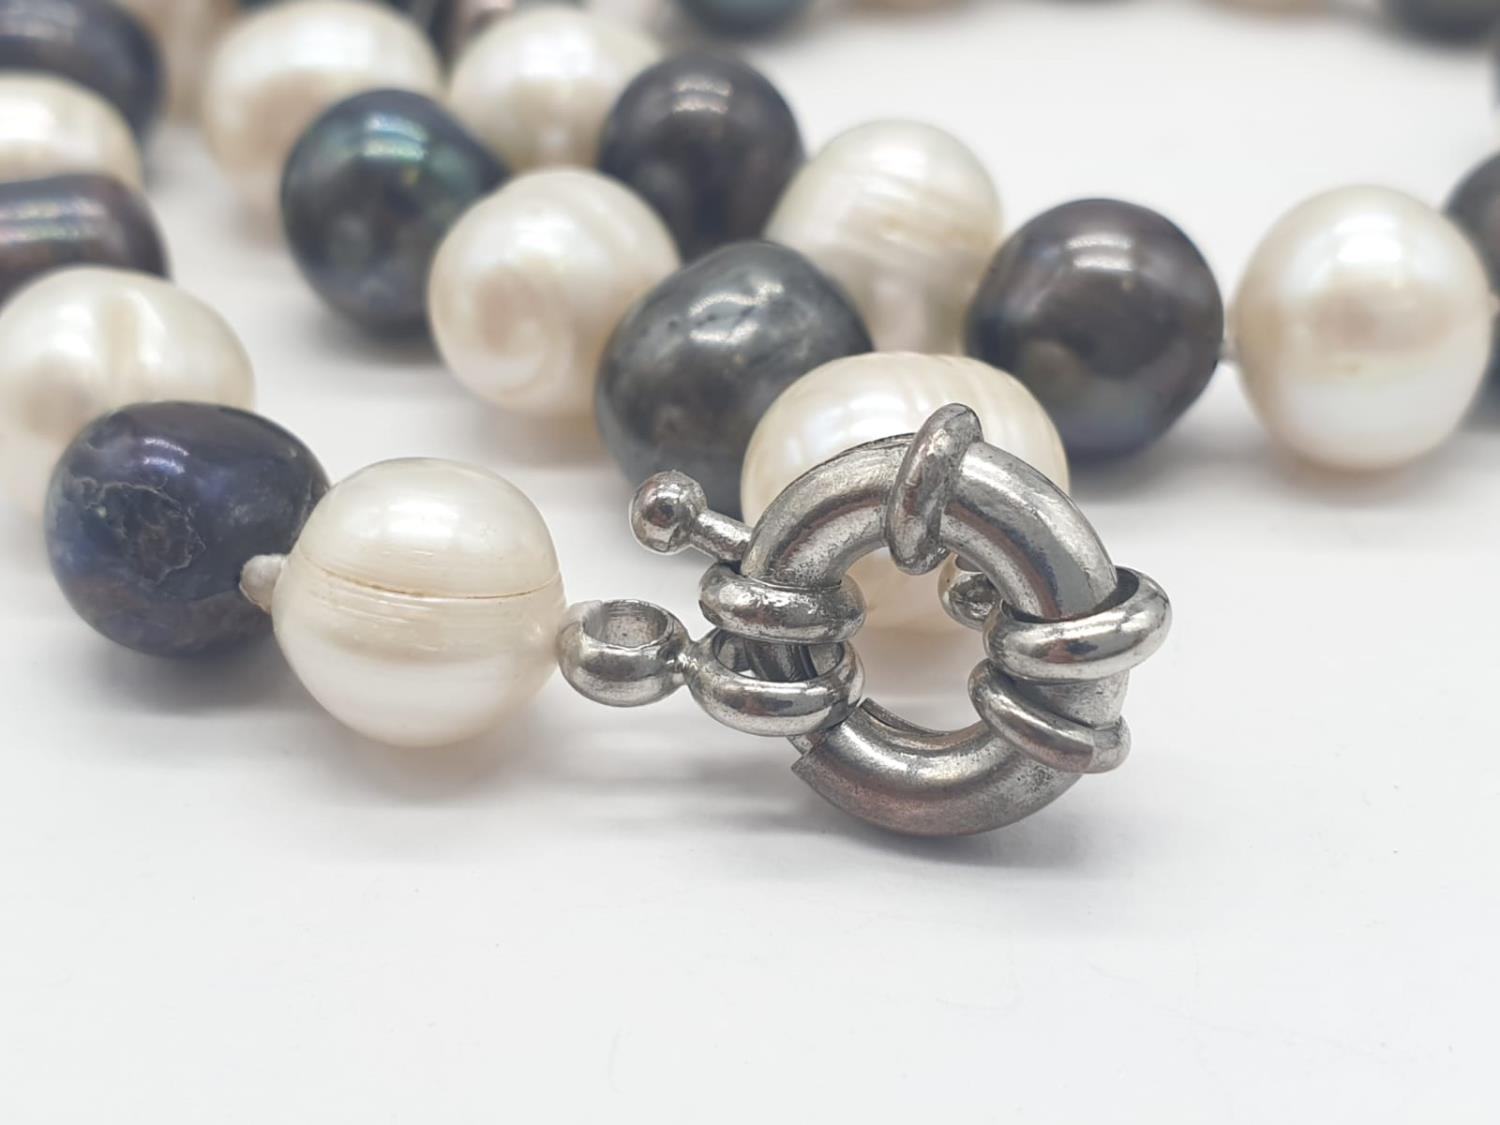 Black and White Pearl NECKLACE. 91.8g 80cm. - Image 4 of 4